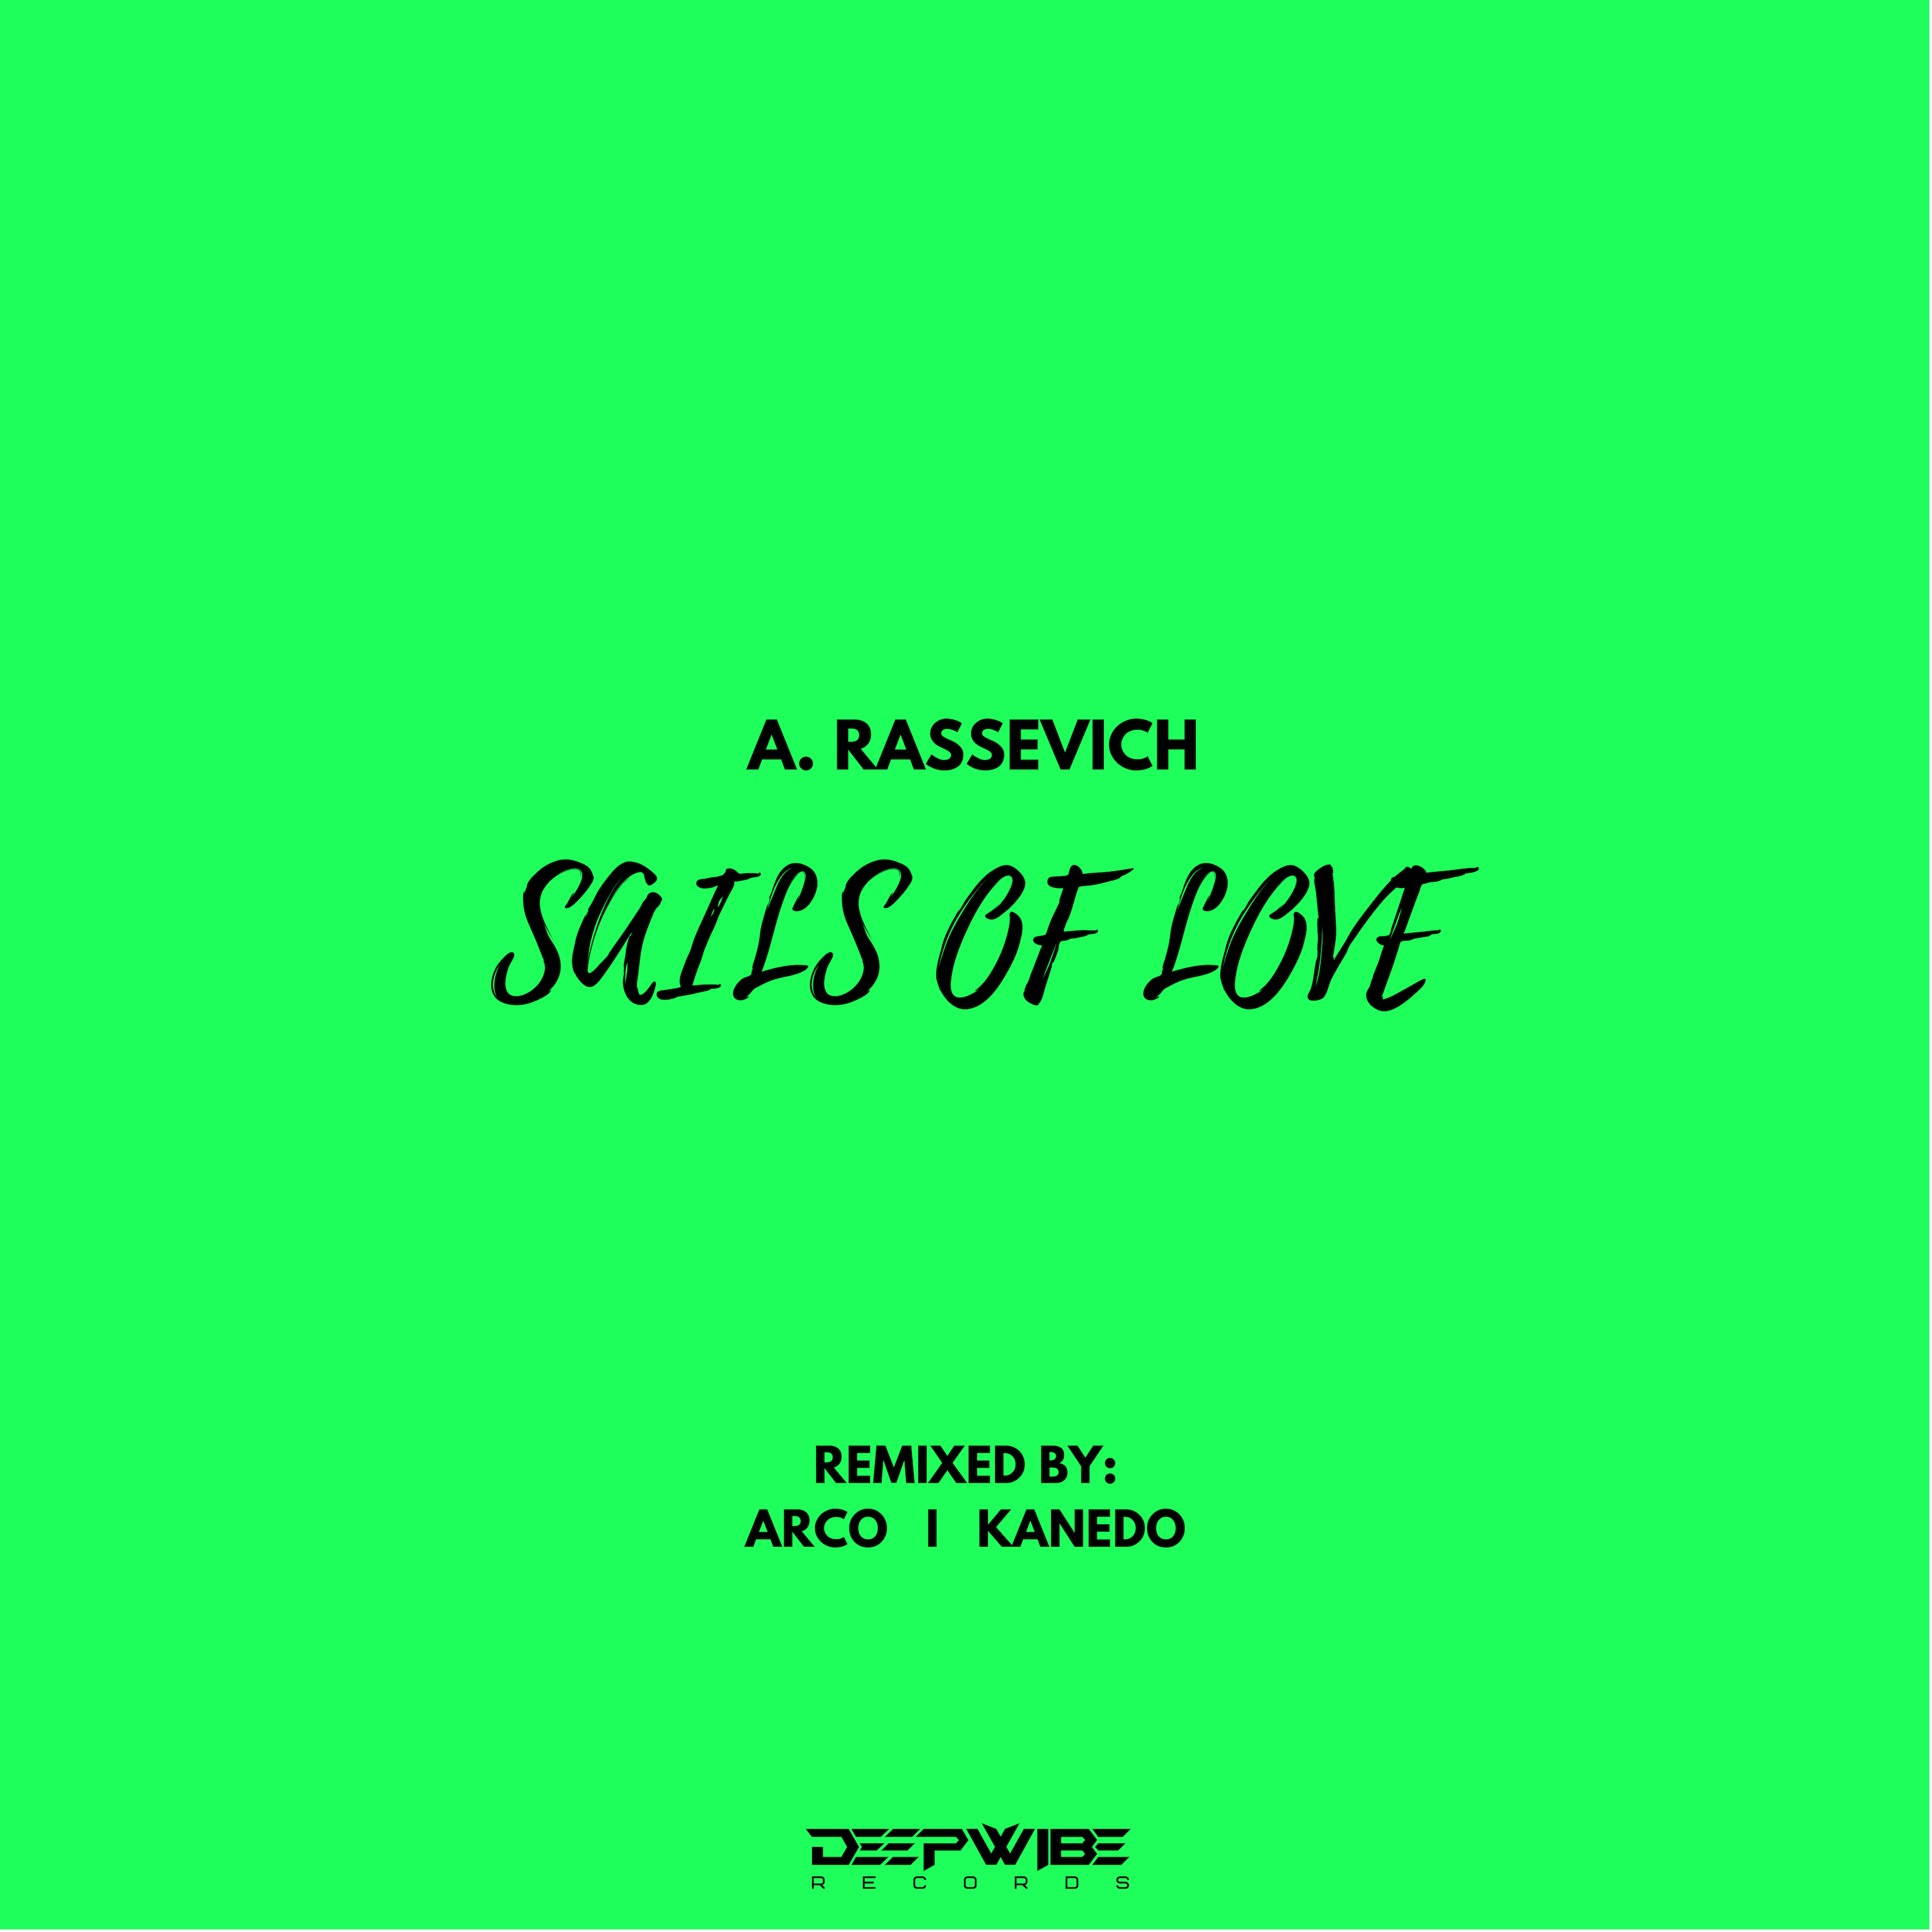 Sails of Love Remix